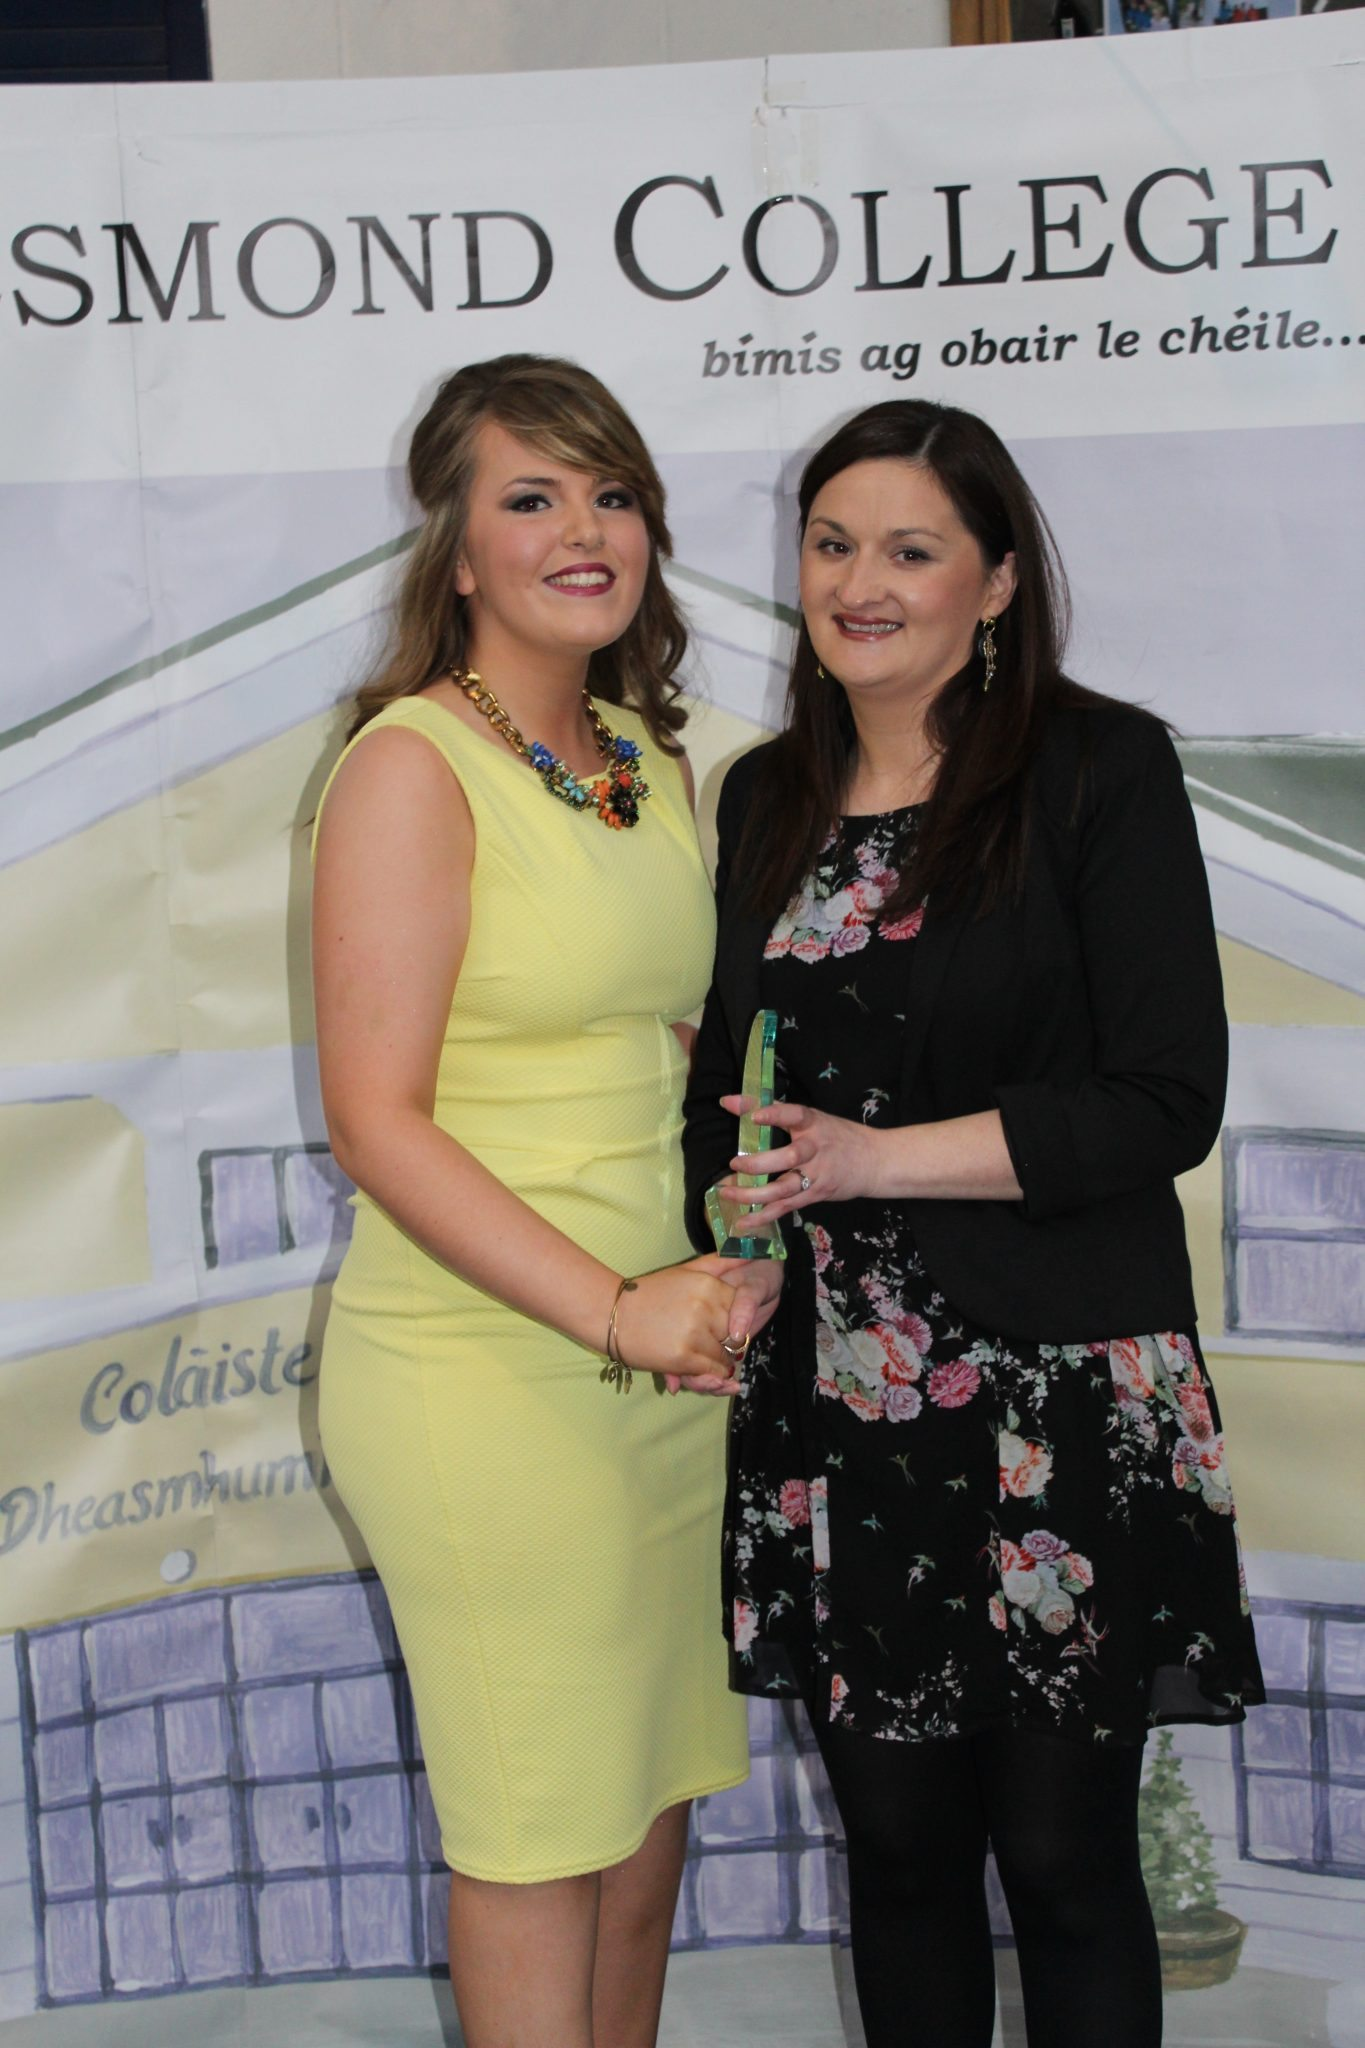 Desmond College Leaving Certificate Graduation 2015: Shannon White with Ms O'Mahony